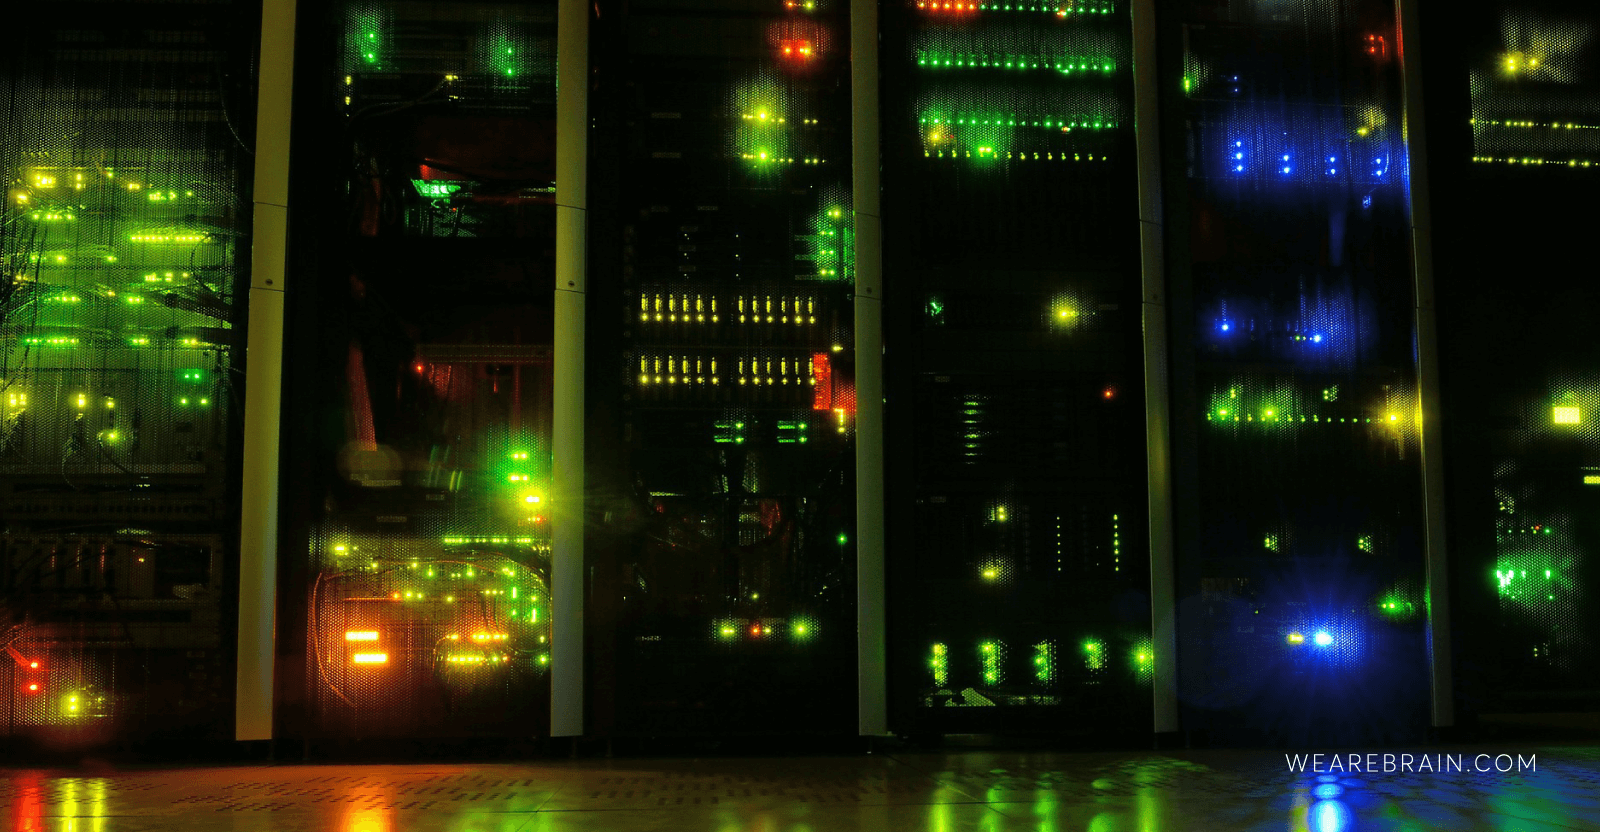 picture of a supercomputer